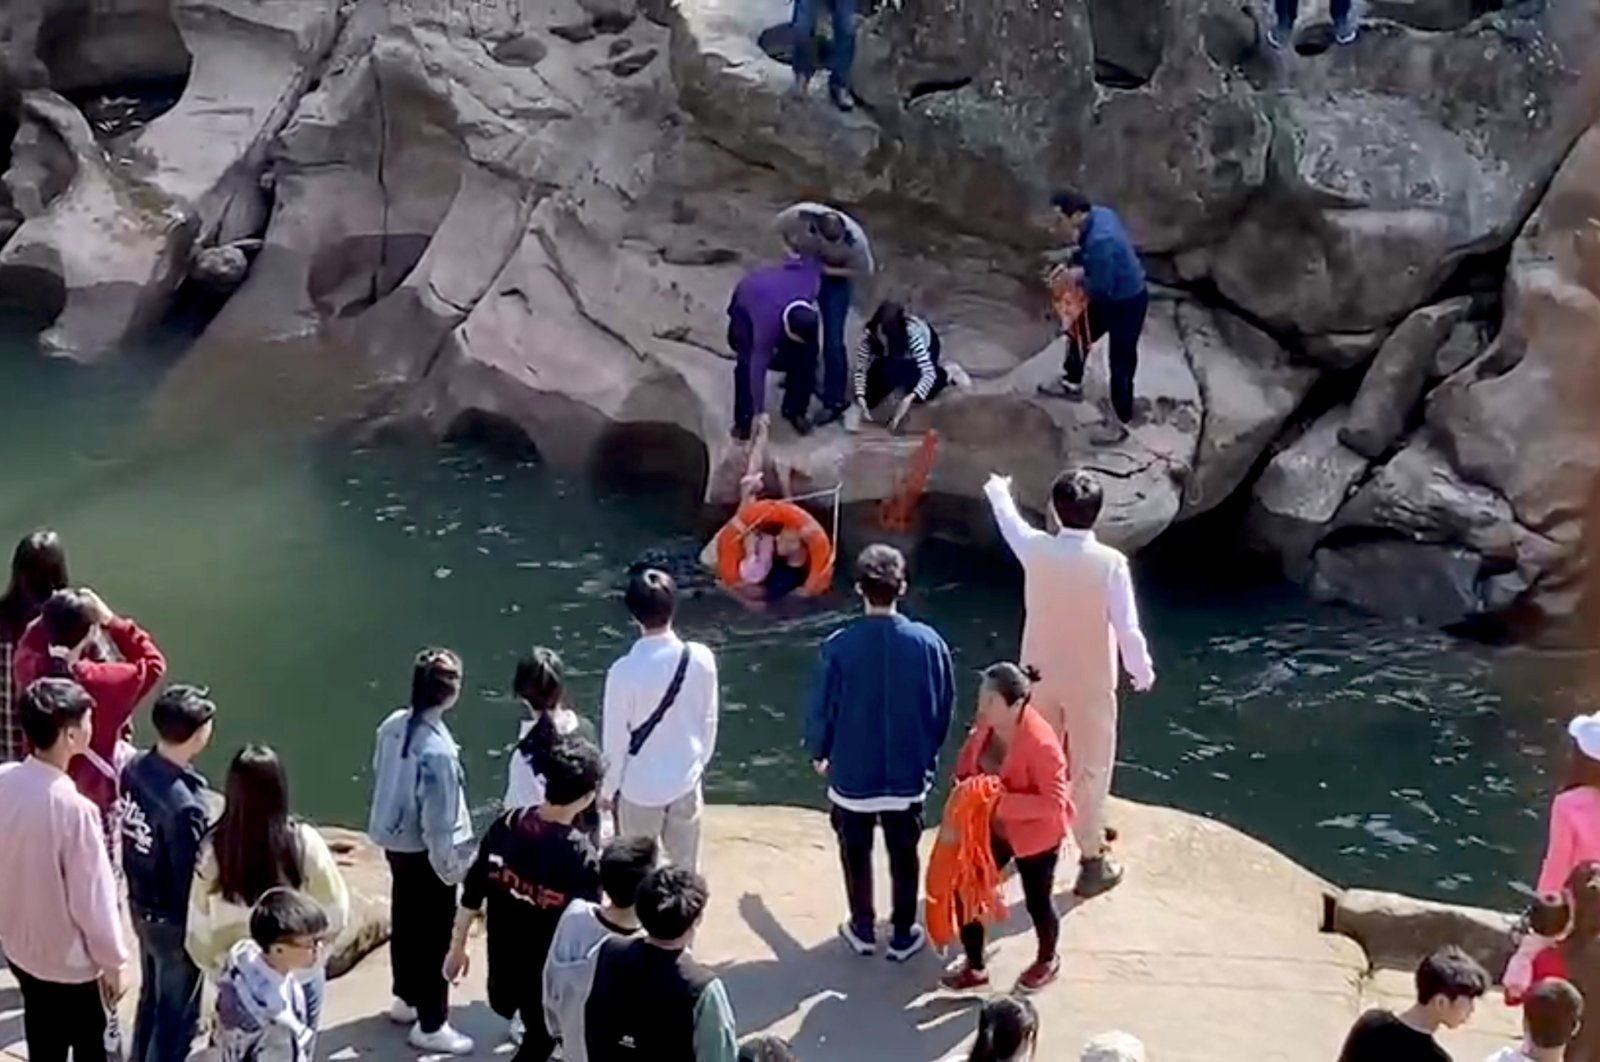 Stephen Ellison, British consul-general in Chongqing, rescues a drowning student, who had fallen into a river by accident, at a scenic spot in Chongqing, China, Nov. 14, 2020.(British consulate in Chongqing via Reuters TV)